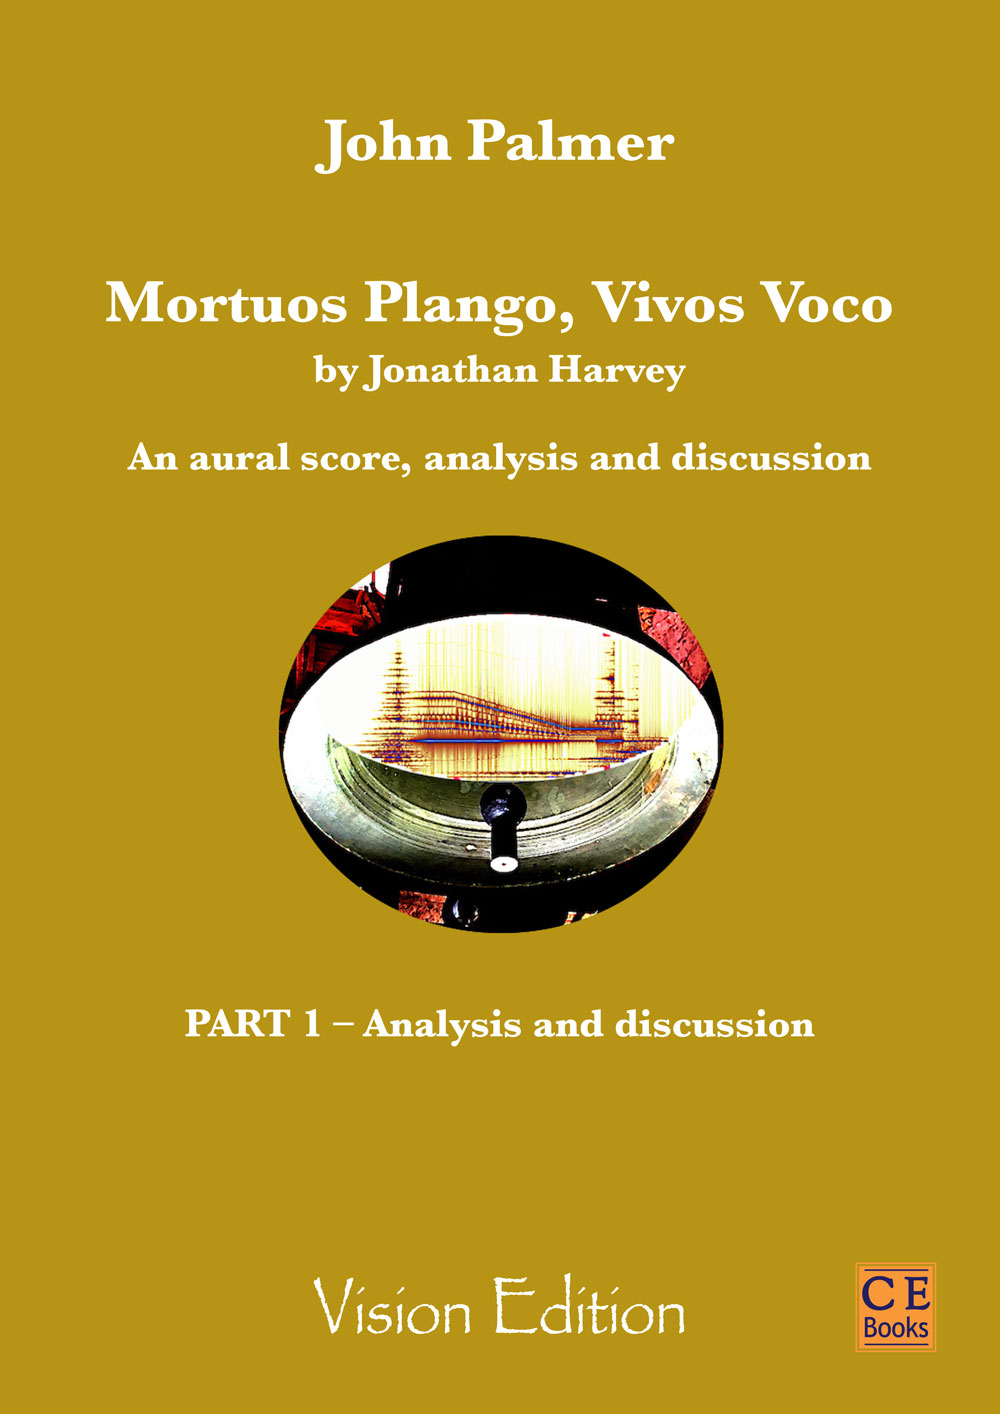 John Palmer: Mortuos Plango, Vivos Voco by Jonathan Harvey. An aural score, analysis and discussion